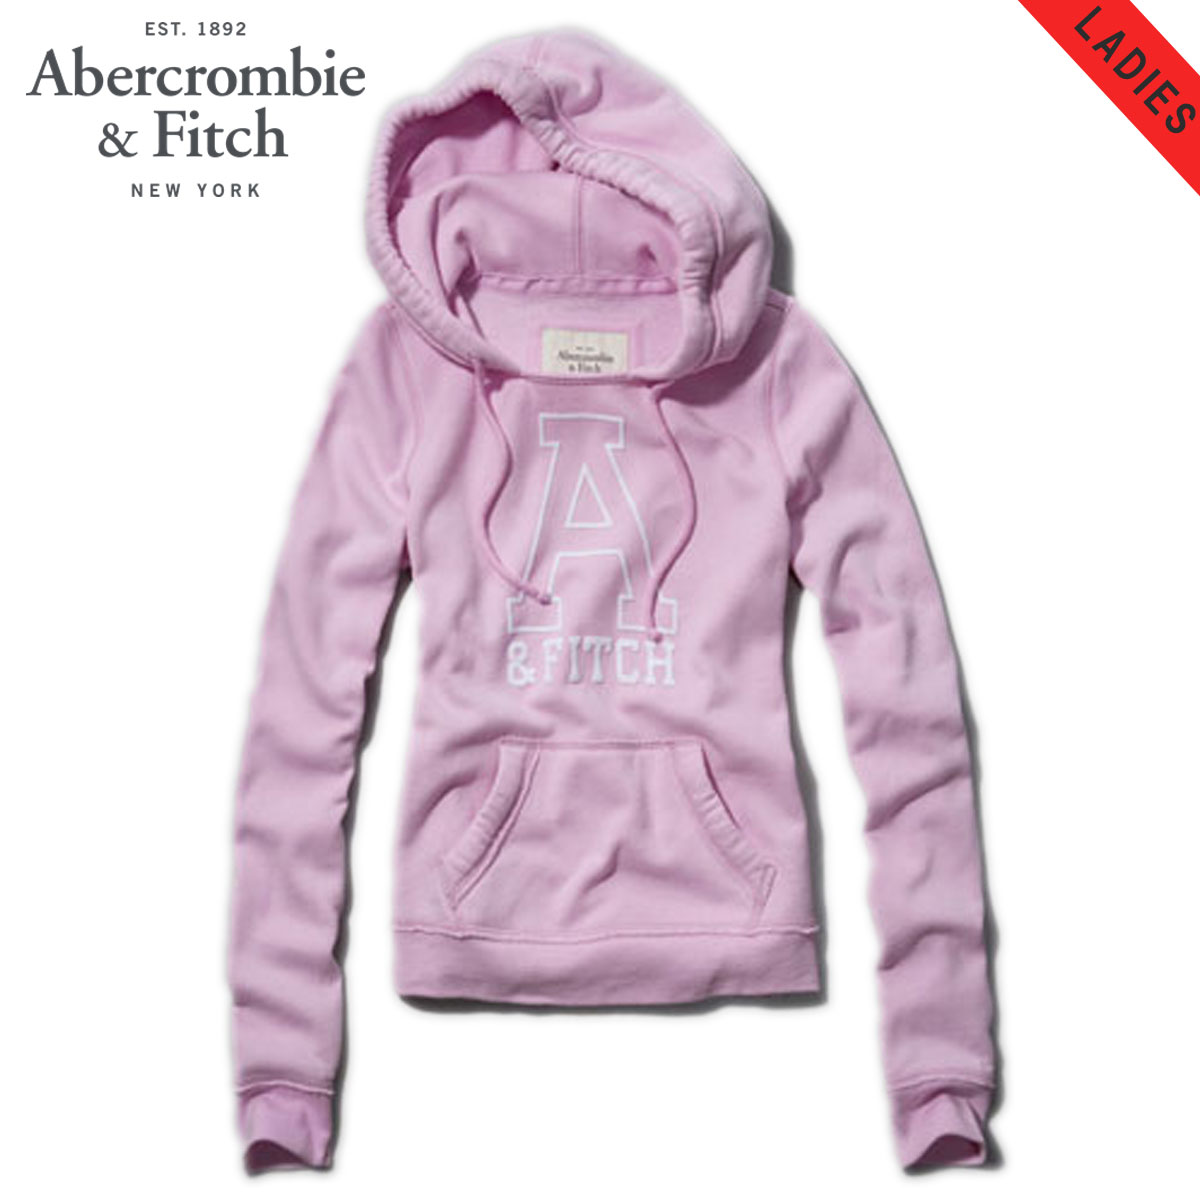 【15%OFFセール 7/27 10:00〜8/1 23:59】 アバクロ Abercrombie&Fitch 正規品 レディース パーカー JANA HOODIE 152-514-0224-029